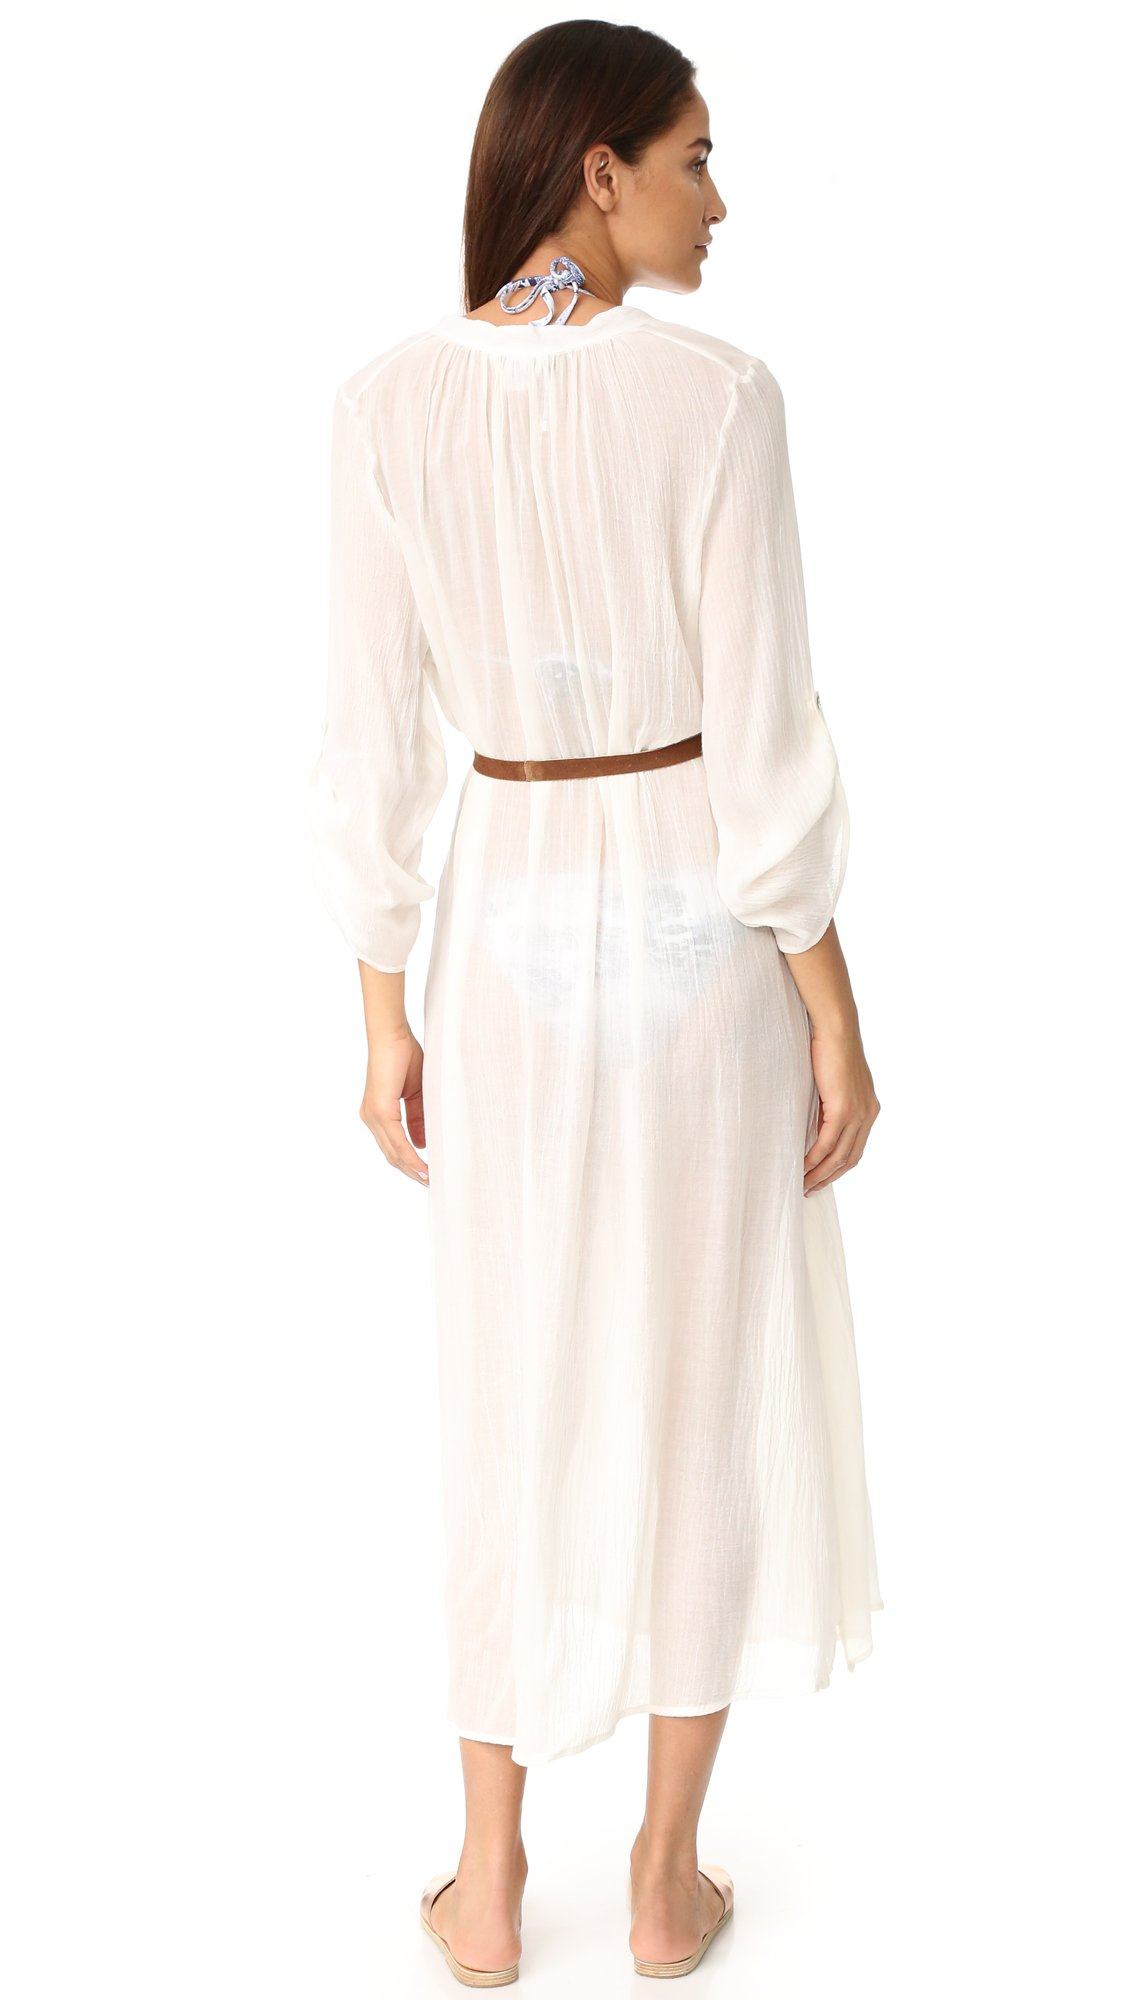 Eberjey Women's Summer Of Love Haven Cover Up Dress, Cloud, S/M by Eberjey (Image #2)